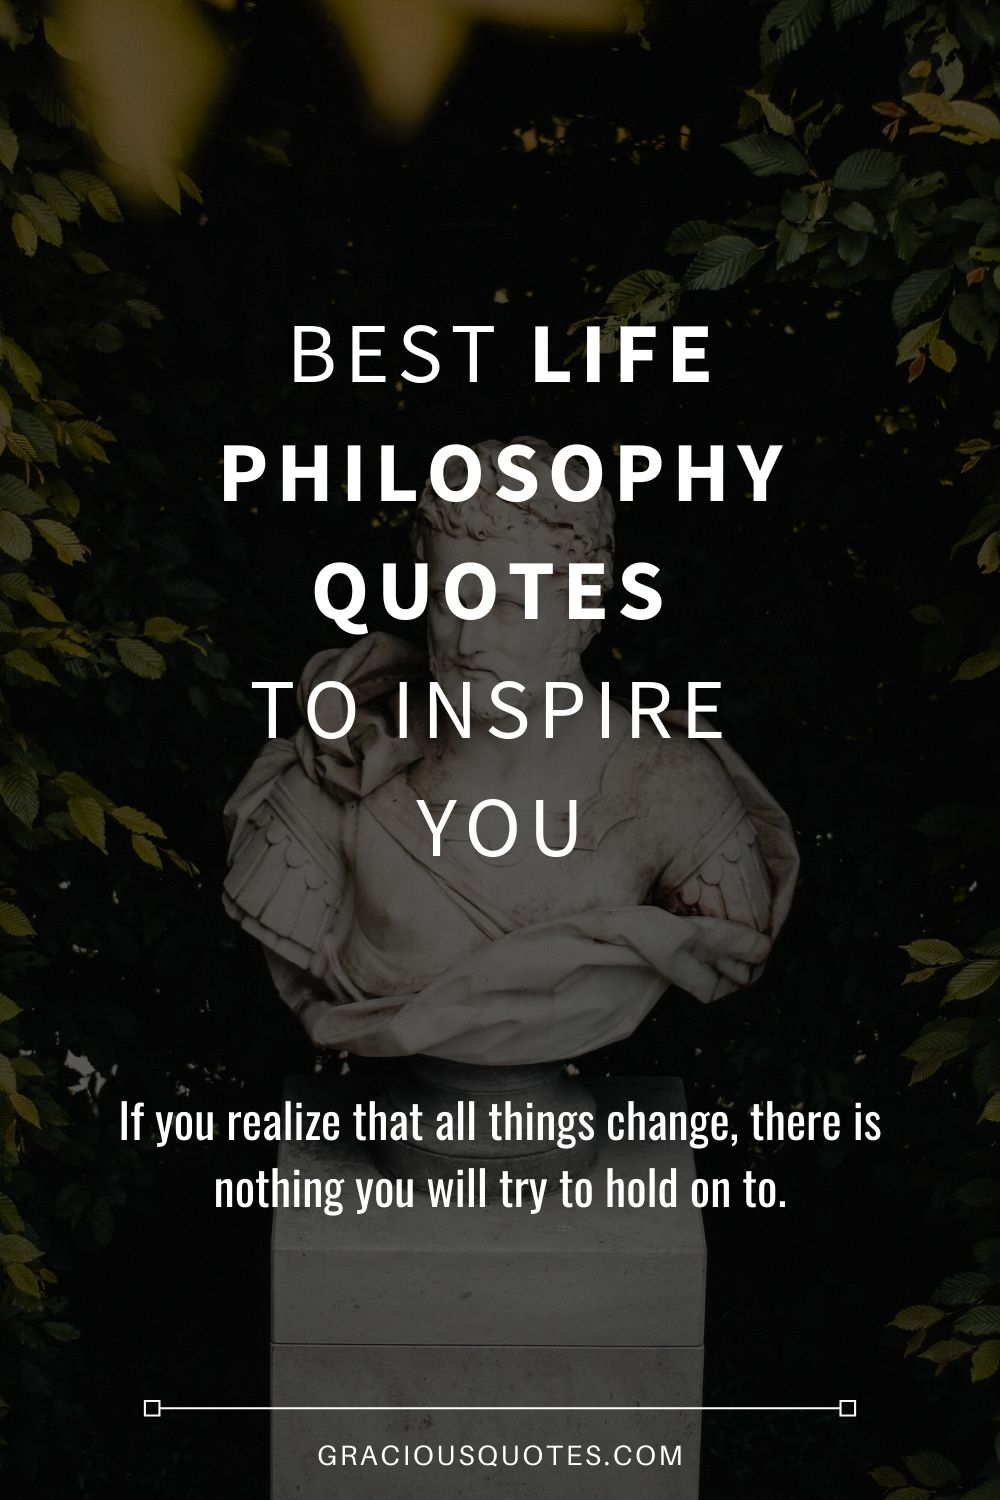 Best Life Philosophy Quotes to Inspire You - Gracious Quotes